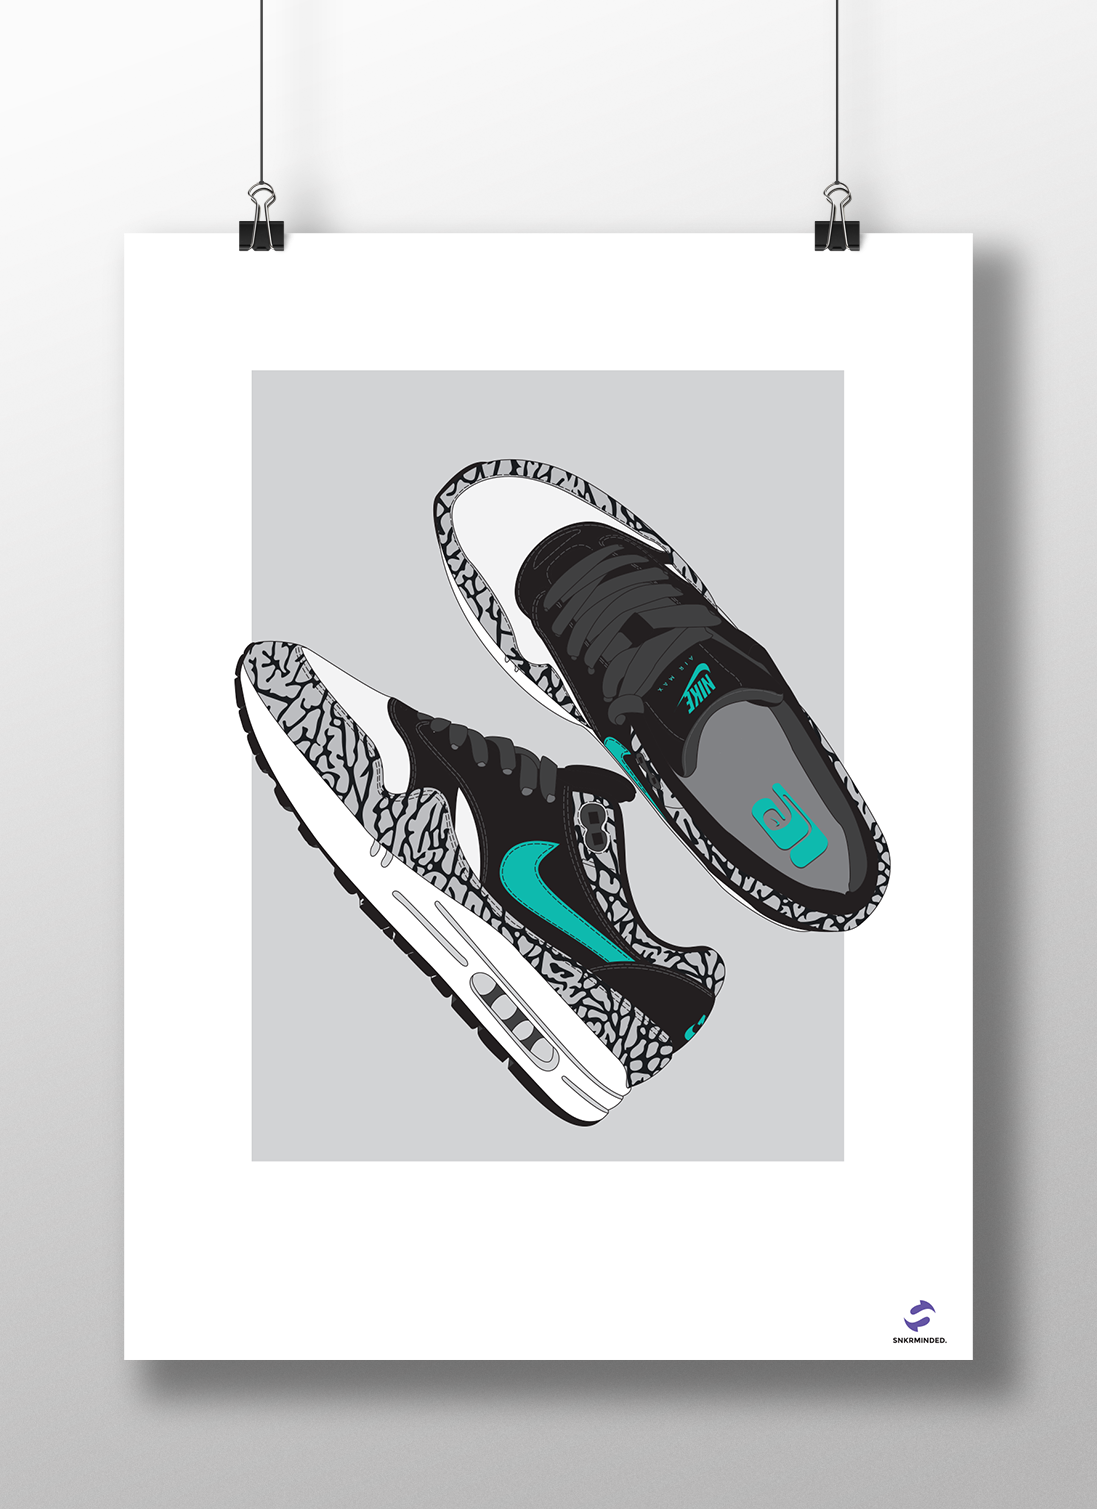 newest 91875 4733a ... Image of Nike Air Max 1 Elephant poster ...